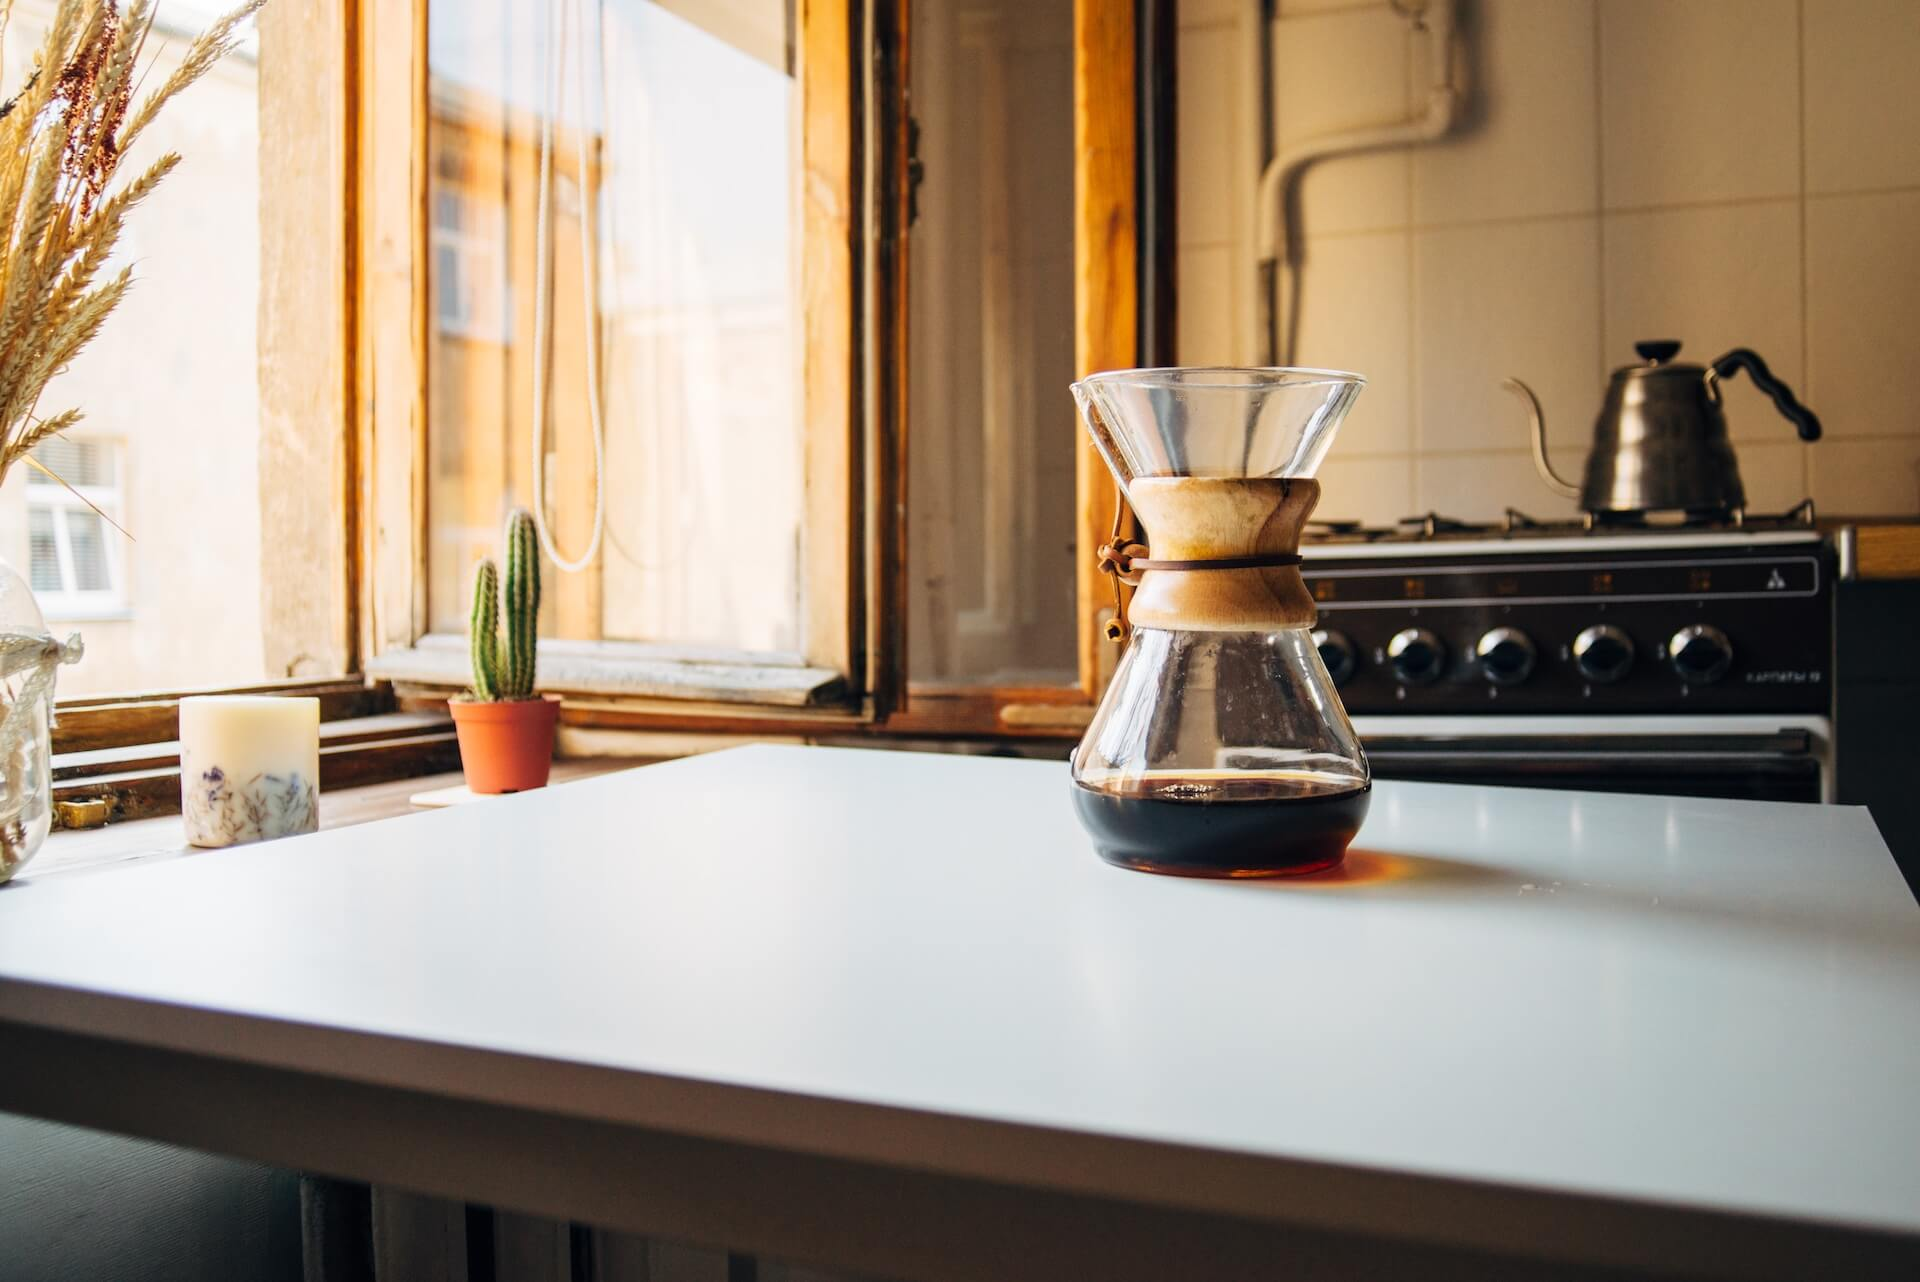 A beginners' guide to brewing with Chemex